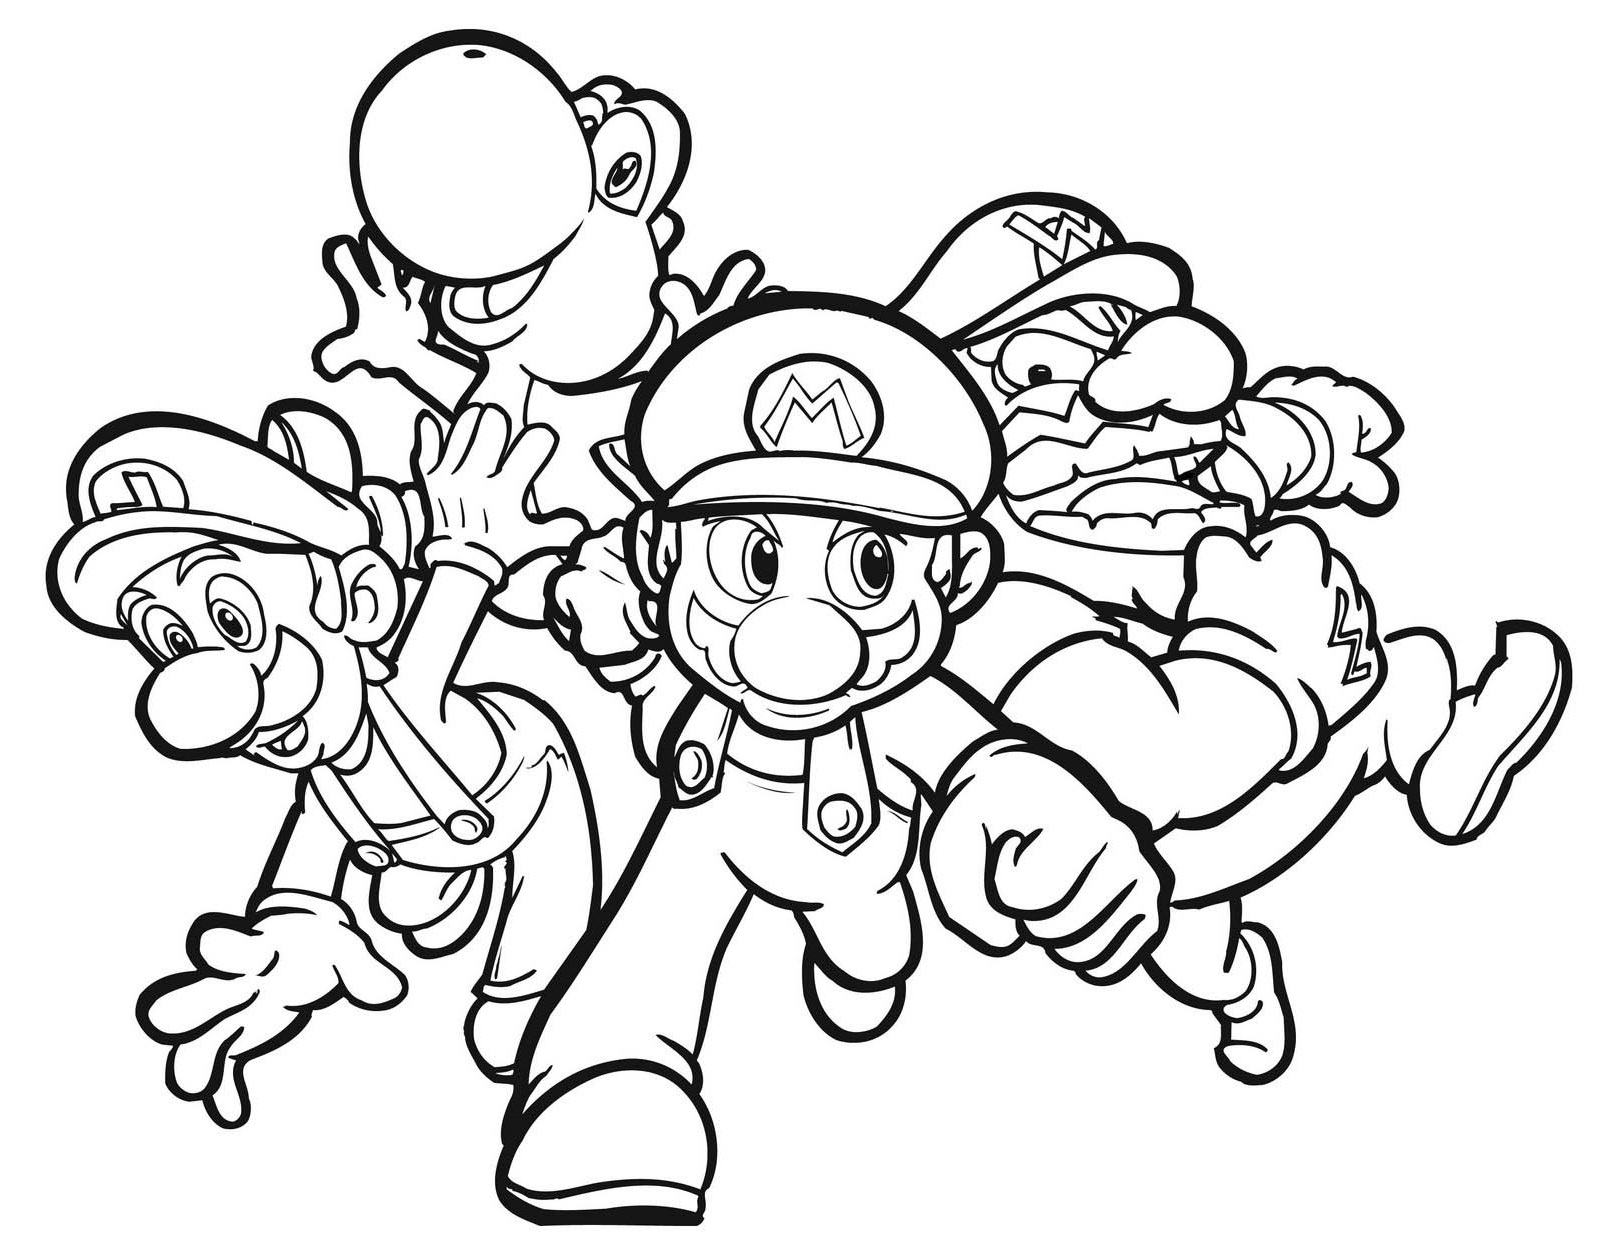 Coloring Pages Mario Lenito Mario Coloring Pages Free Coloring Pages Gallery Of Toad Mario Drawing at Getdrawings Gallery